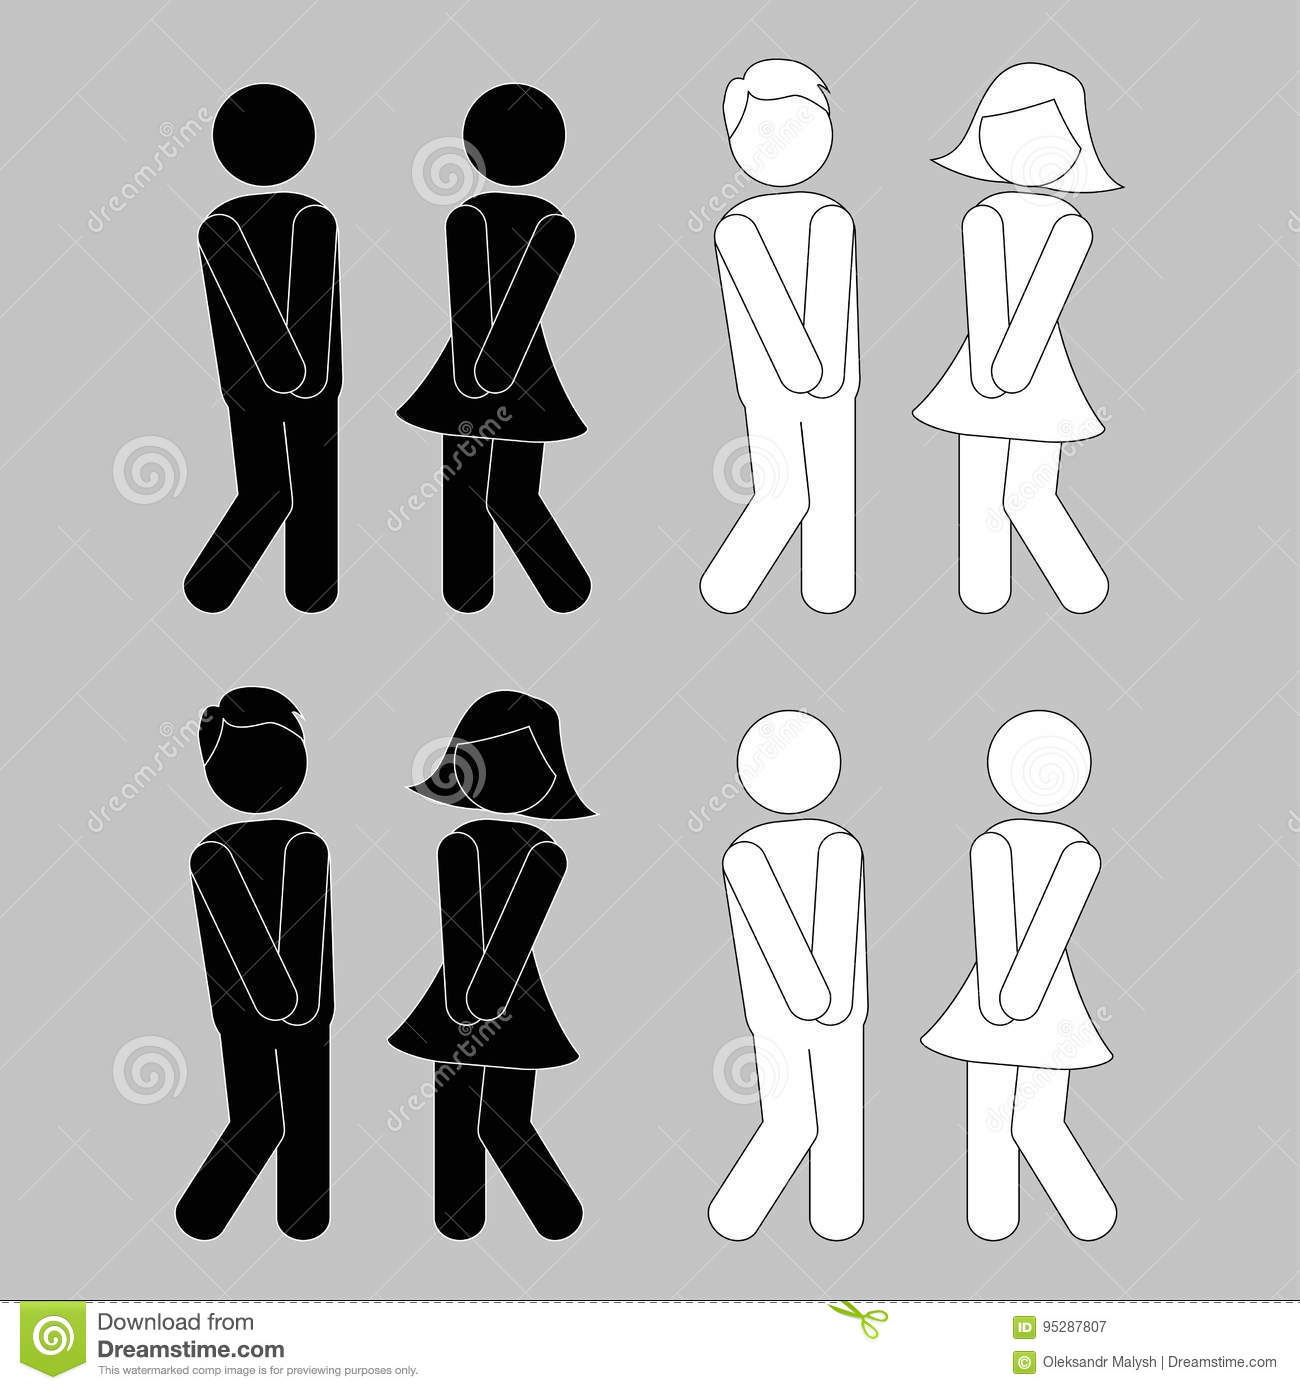 Bathroom Sign Boy Girl wc sign. boy and girl toilet icons stock vector - image: 95287807